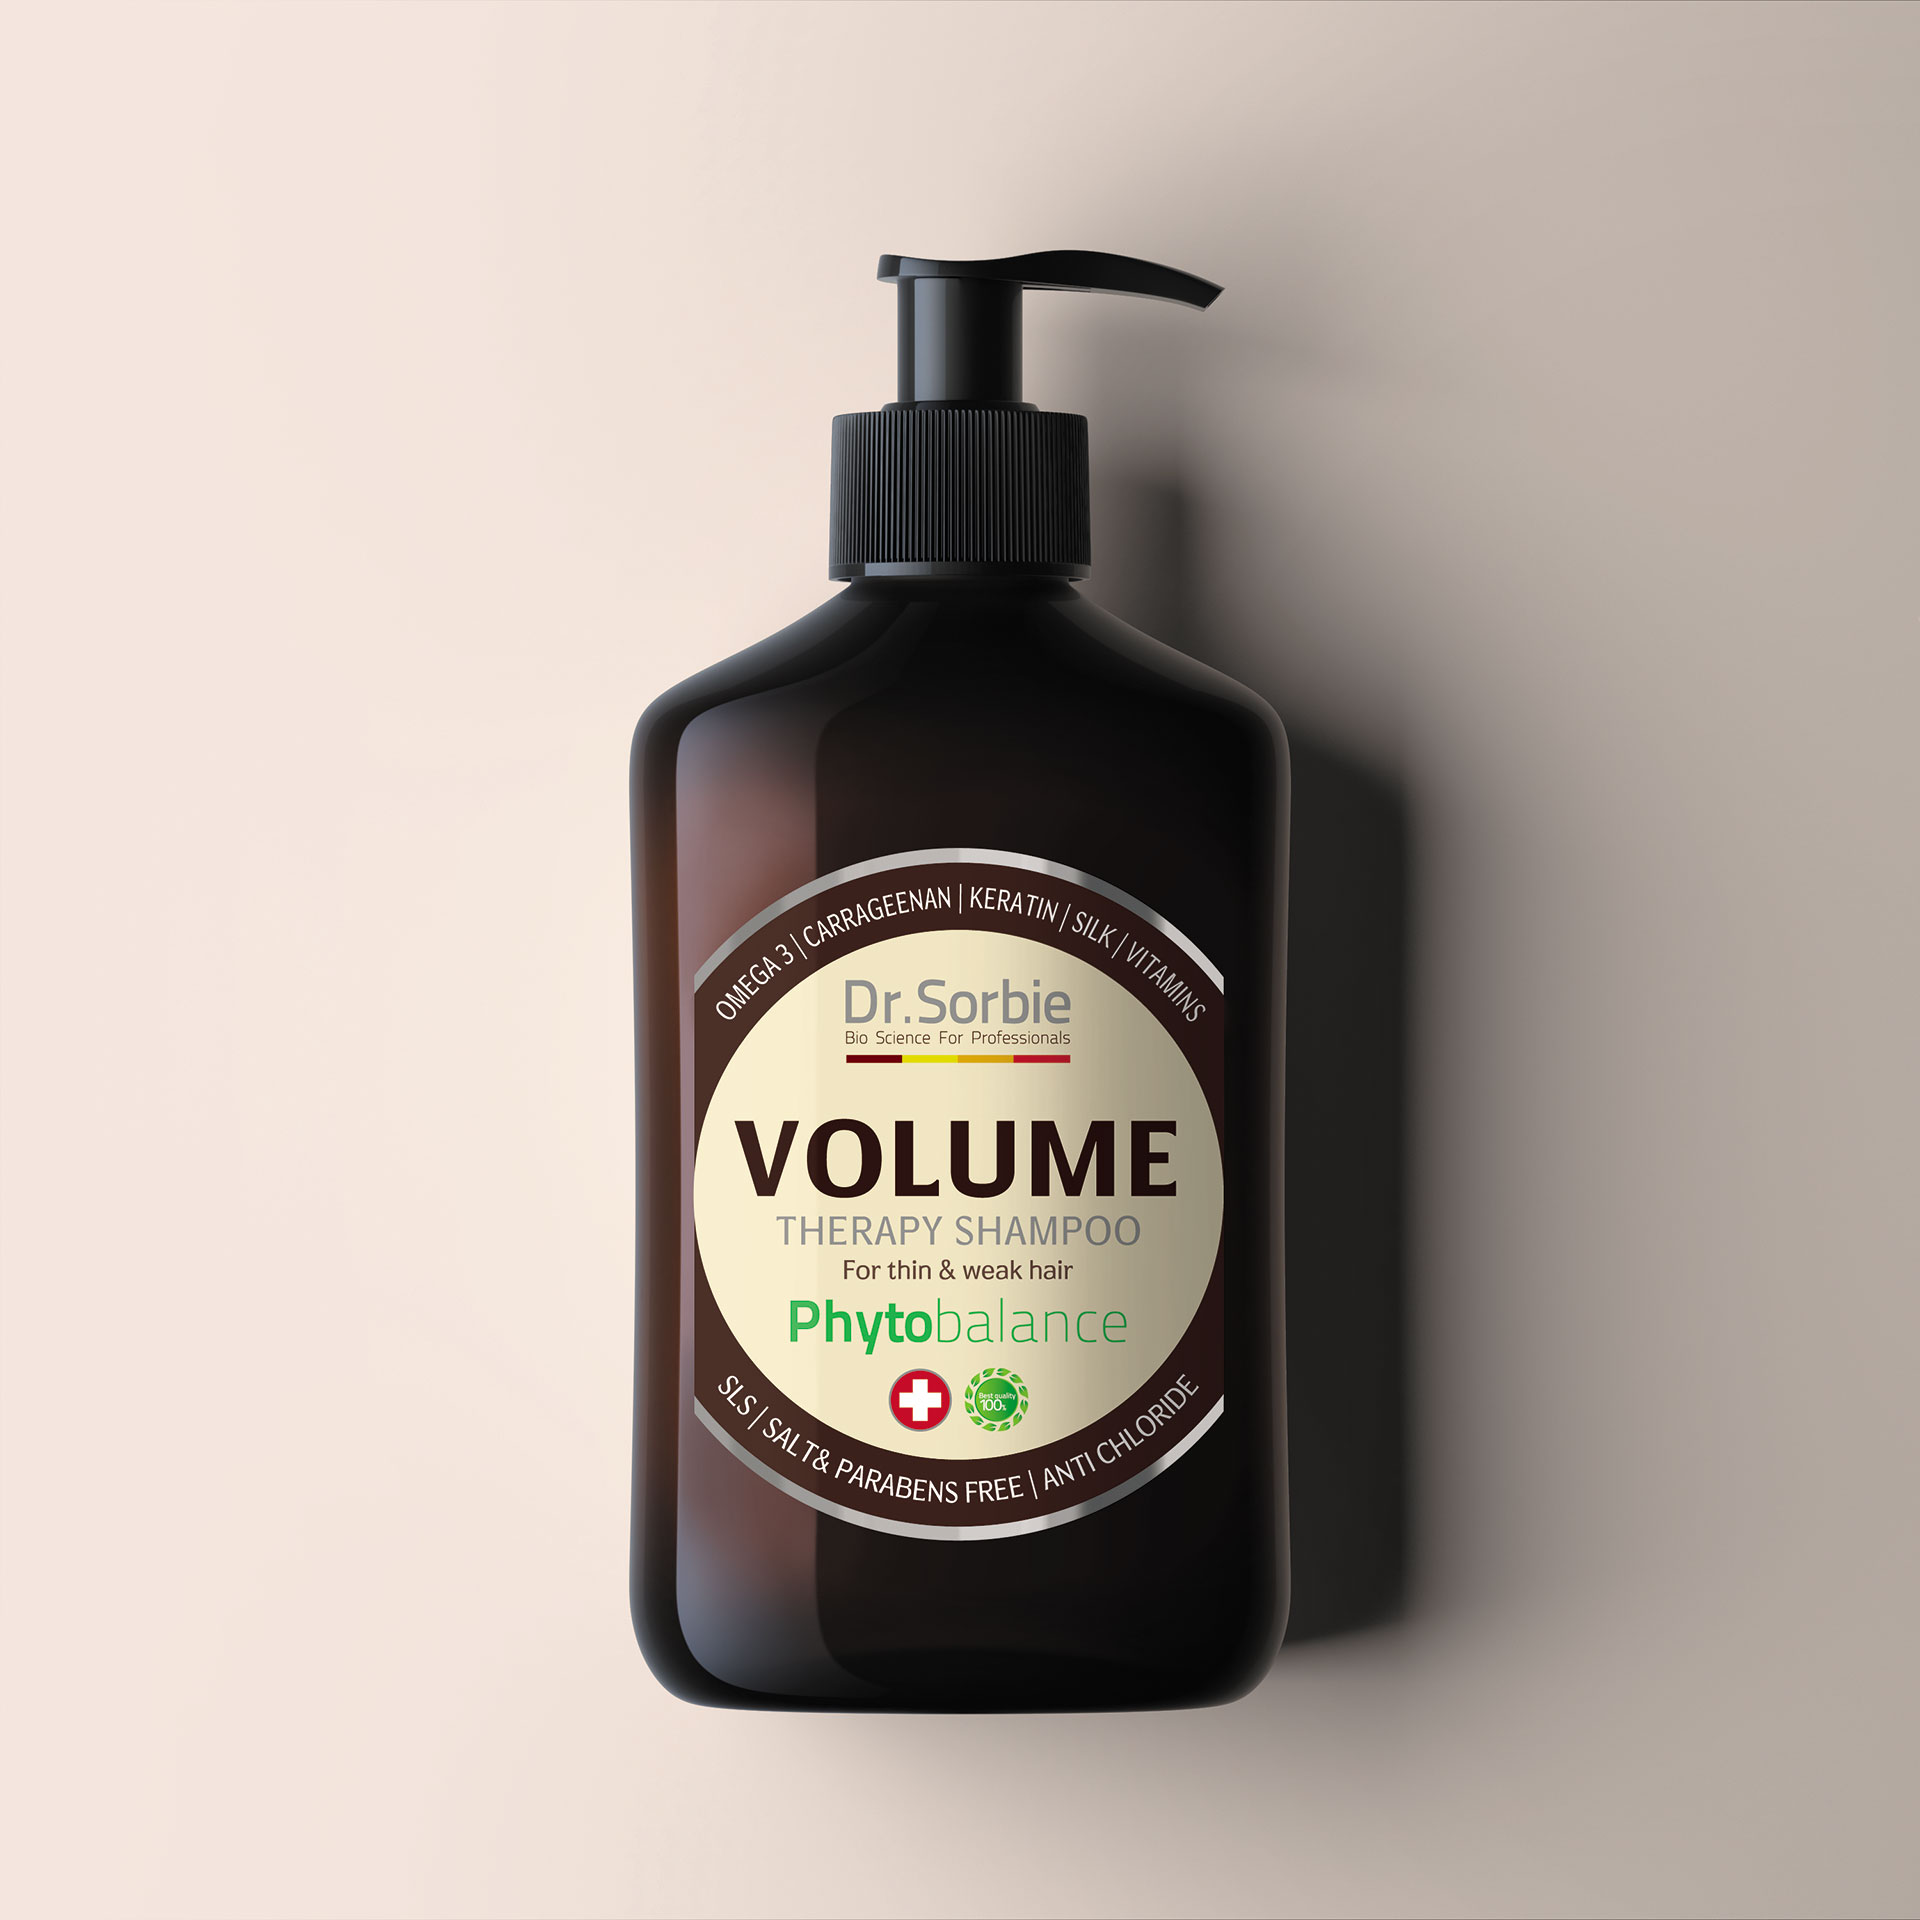 Volume Therapy Shampoo by DR. Sorbie